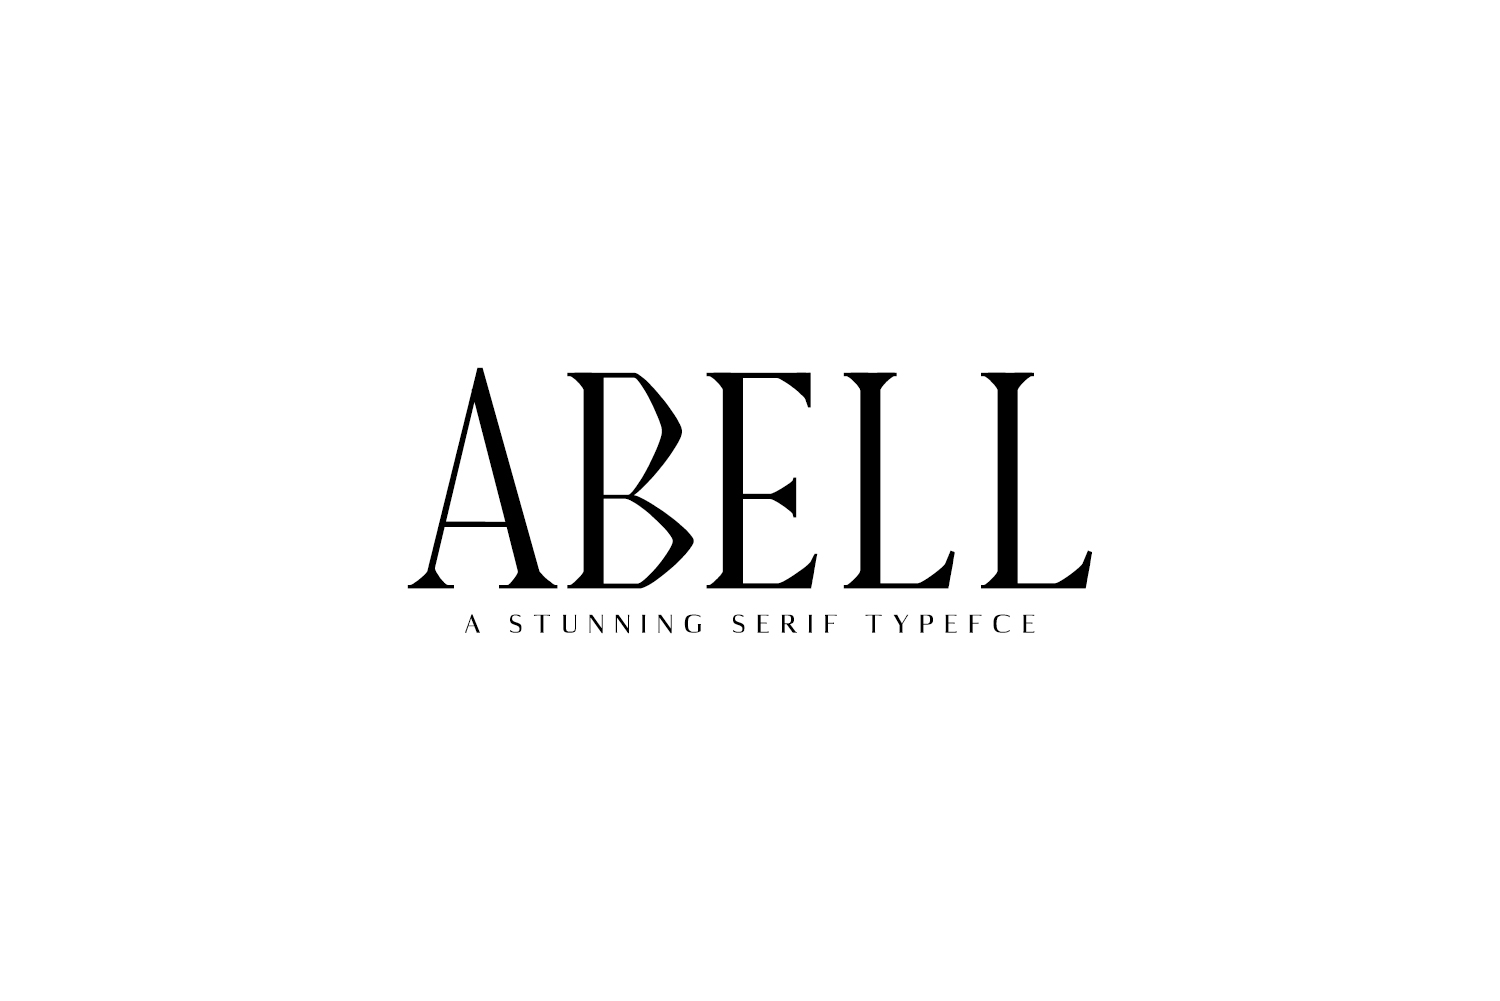 Abell Font By Creative Tacos